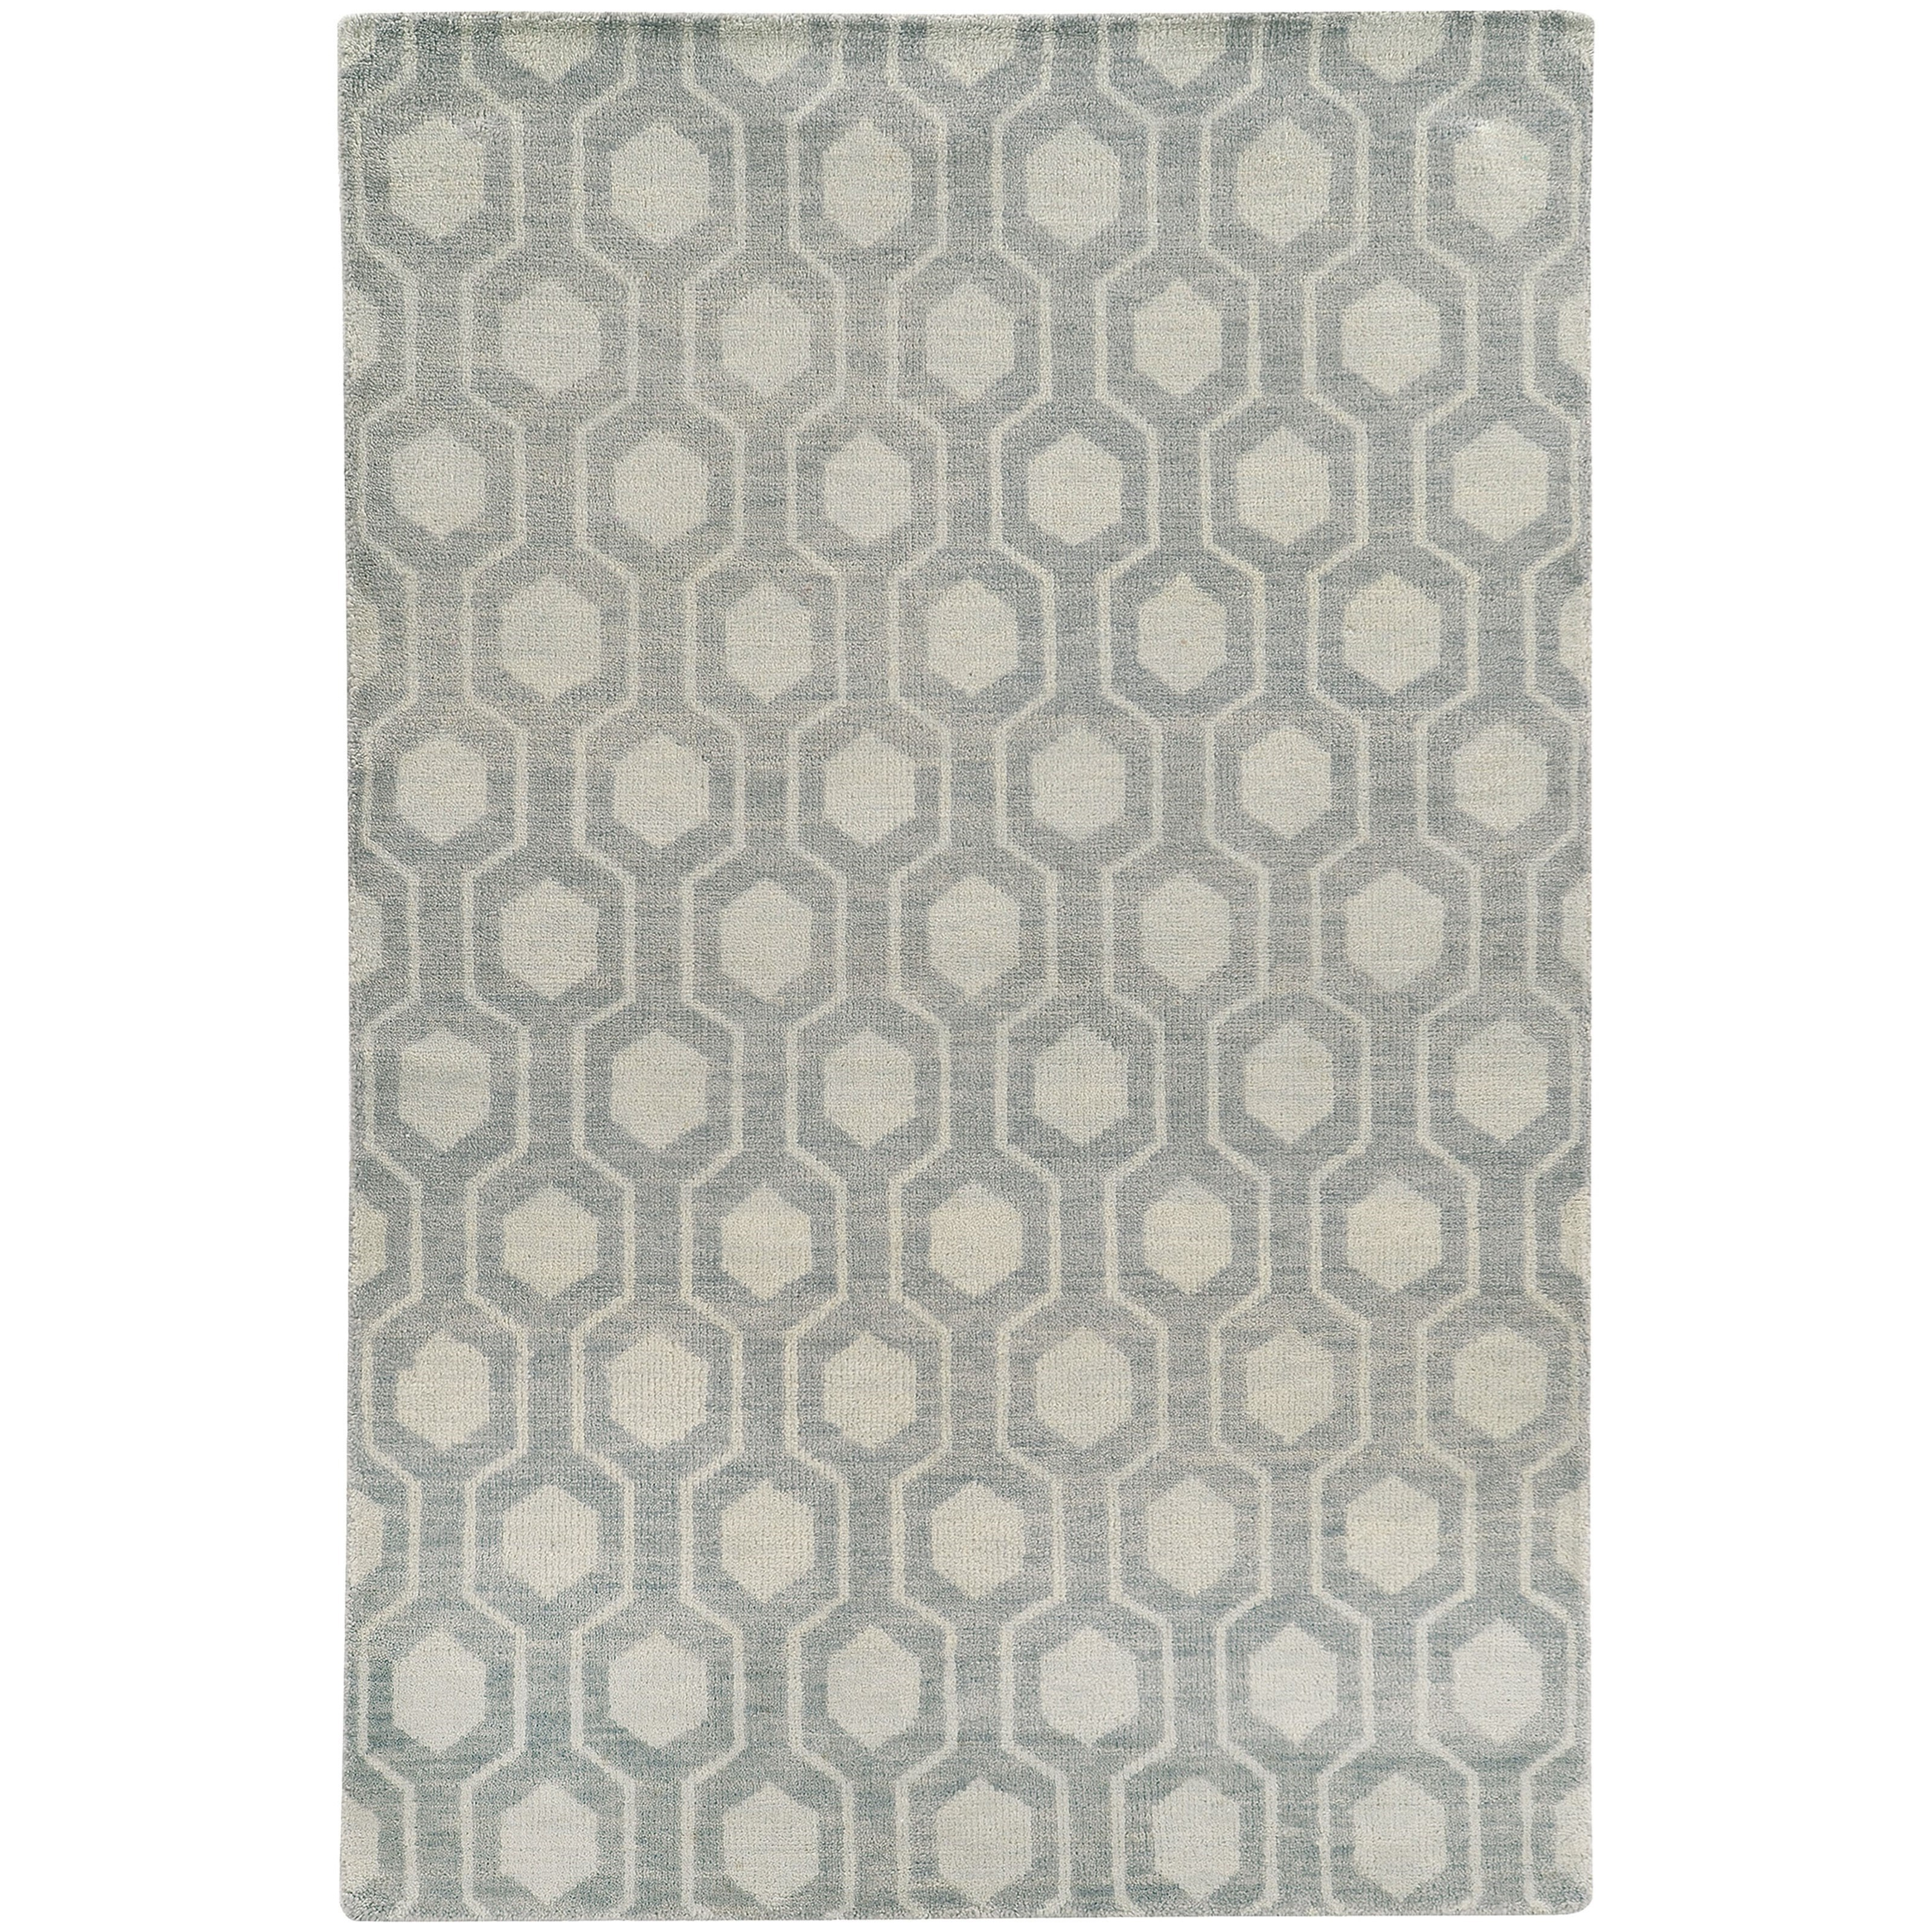 "Maddox 10' 0"" X 13' 0"" Rectangle Rug by Oriental Weavers at Jacksonville Furniture Mart"